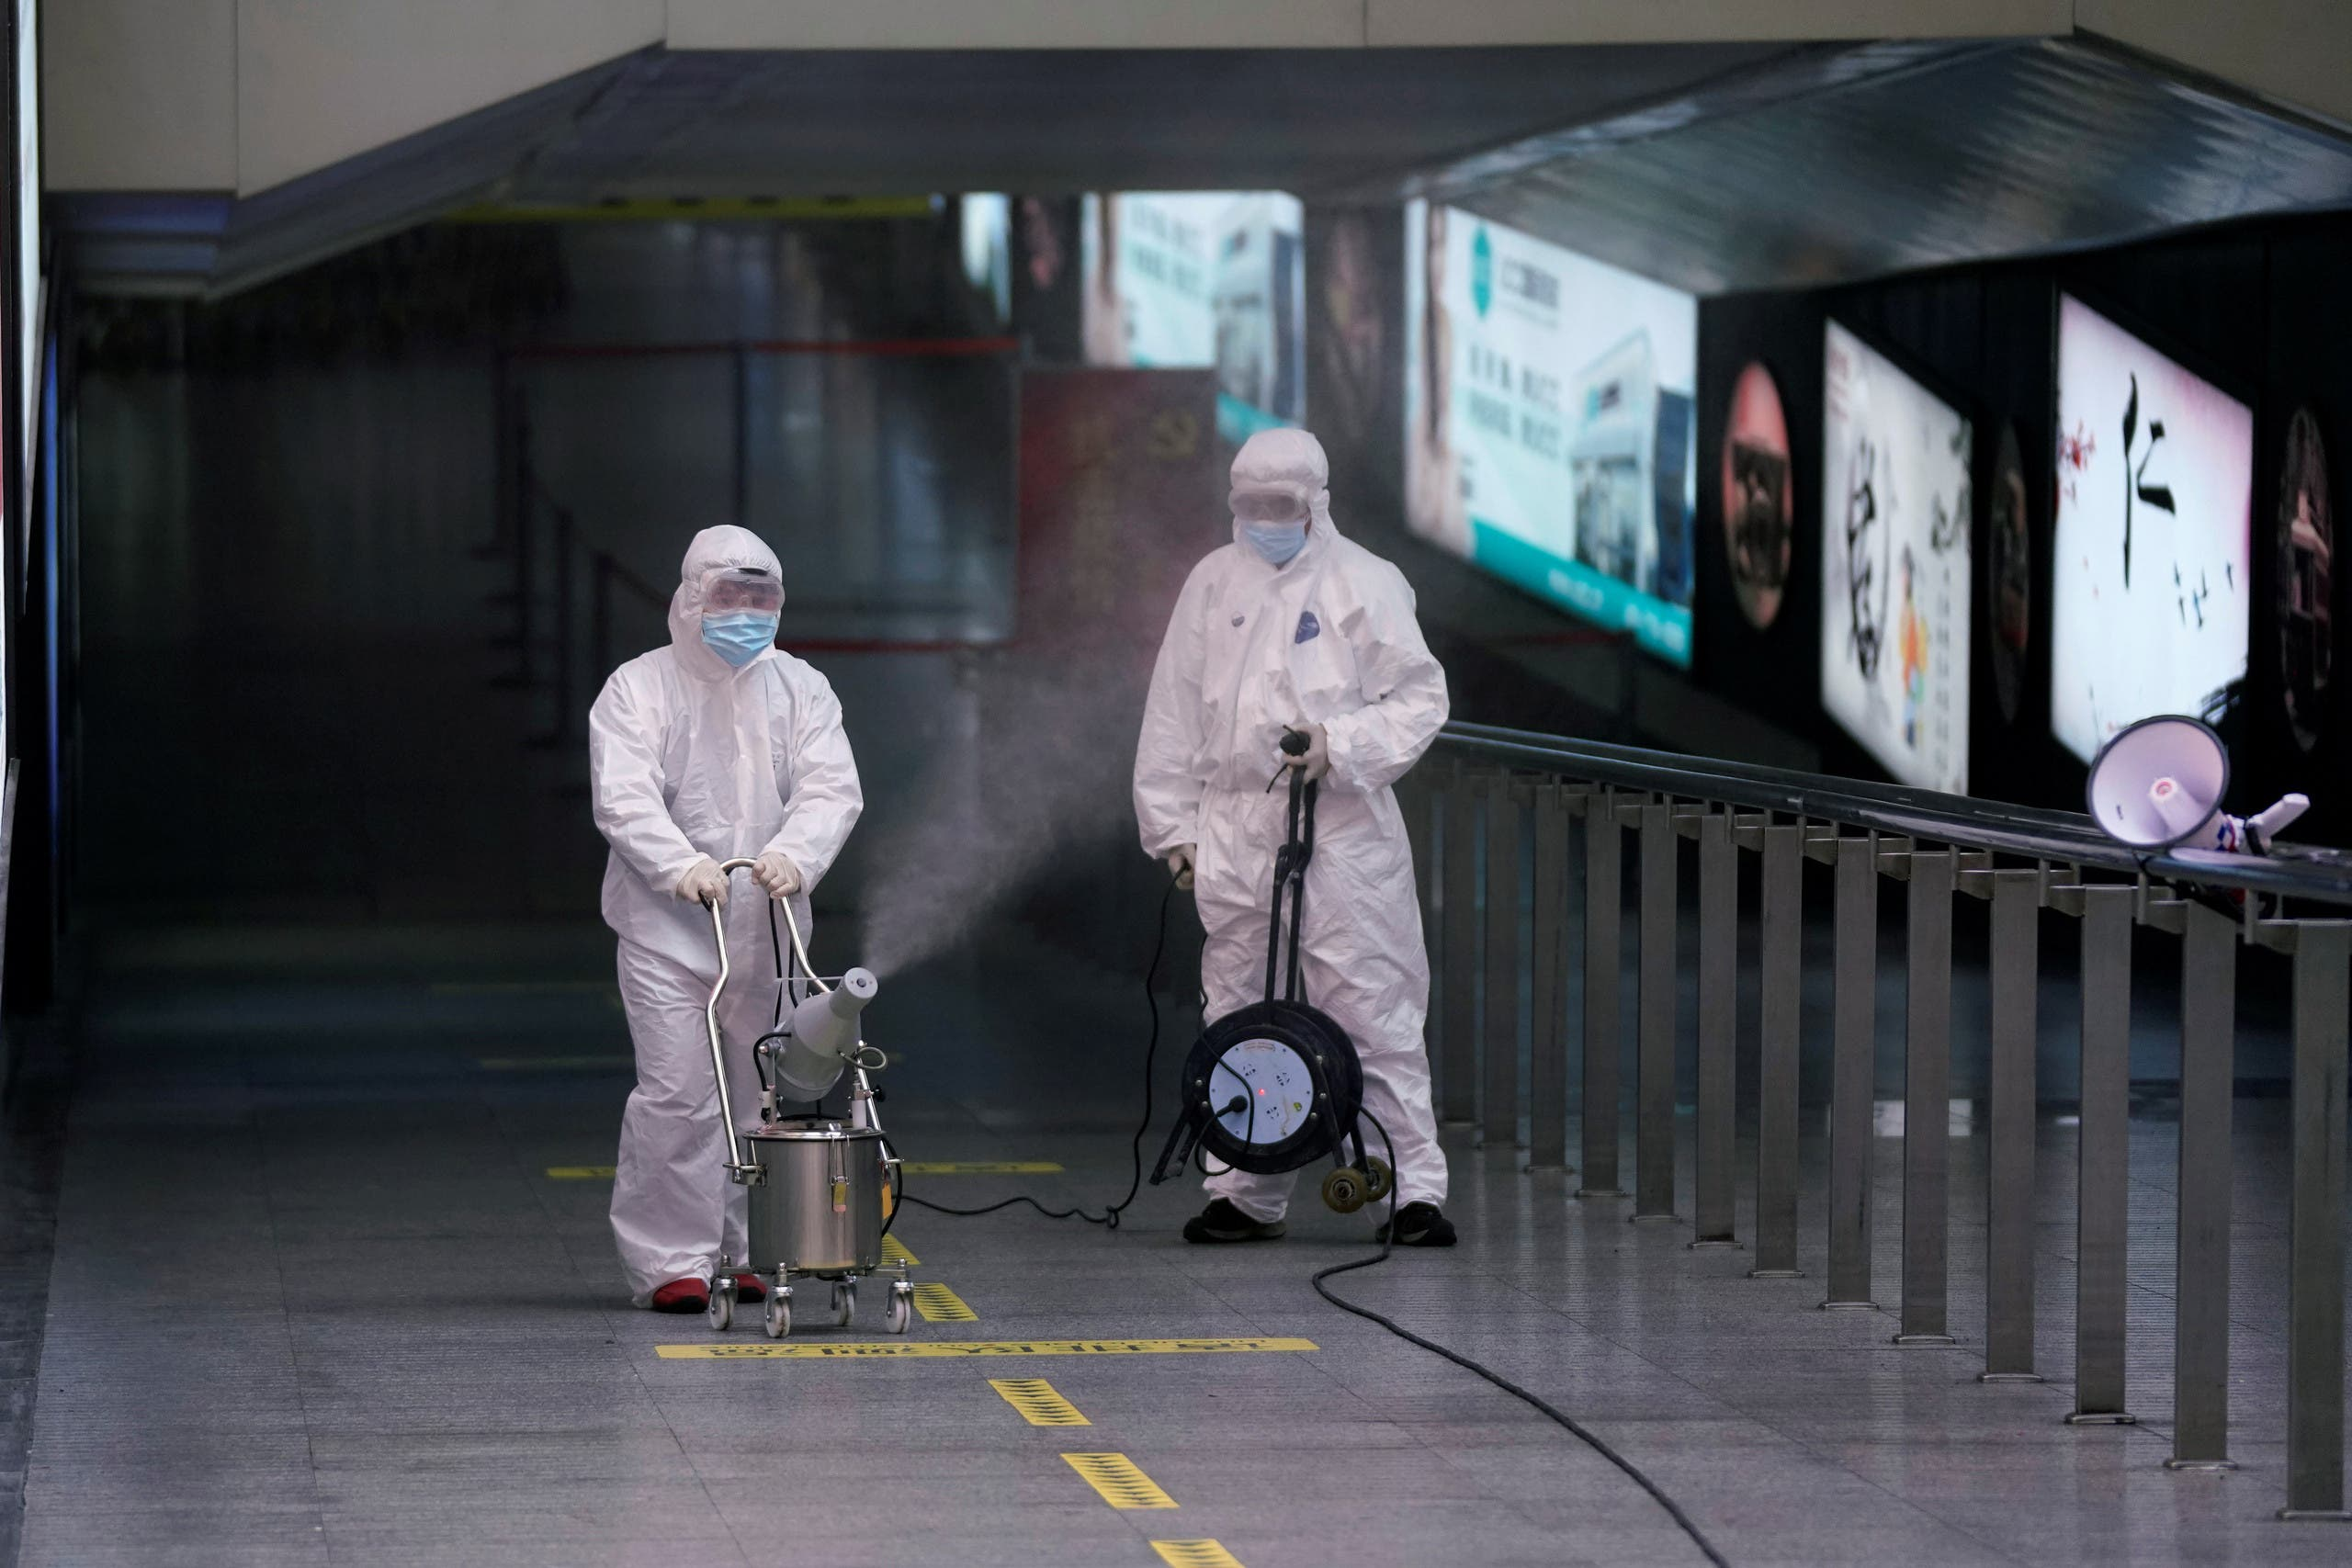 Workers with sanitizing equipment disinfect at the Shanghai railway station in Shanghai, China, as the country is hit by an outbreak of a new coronavirus, February 27, 2020. (Reuters)